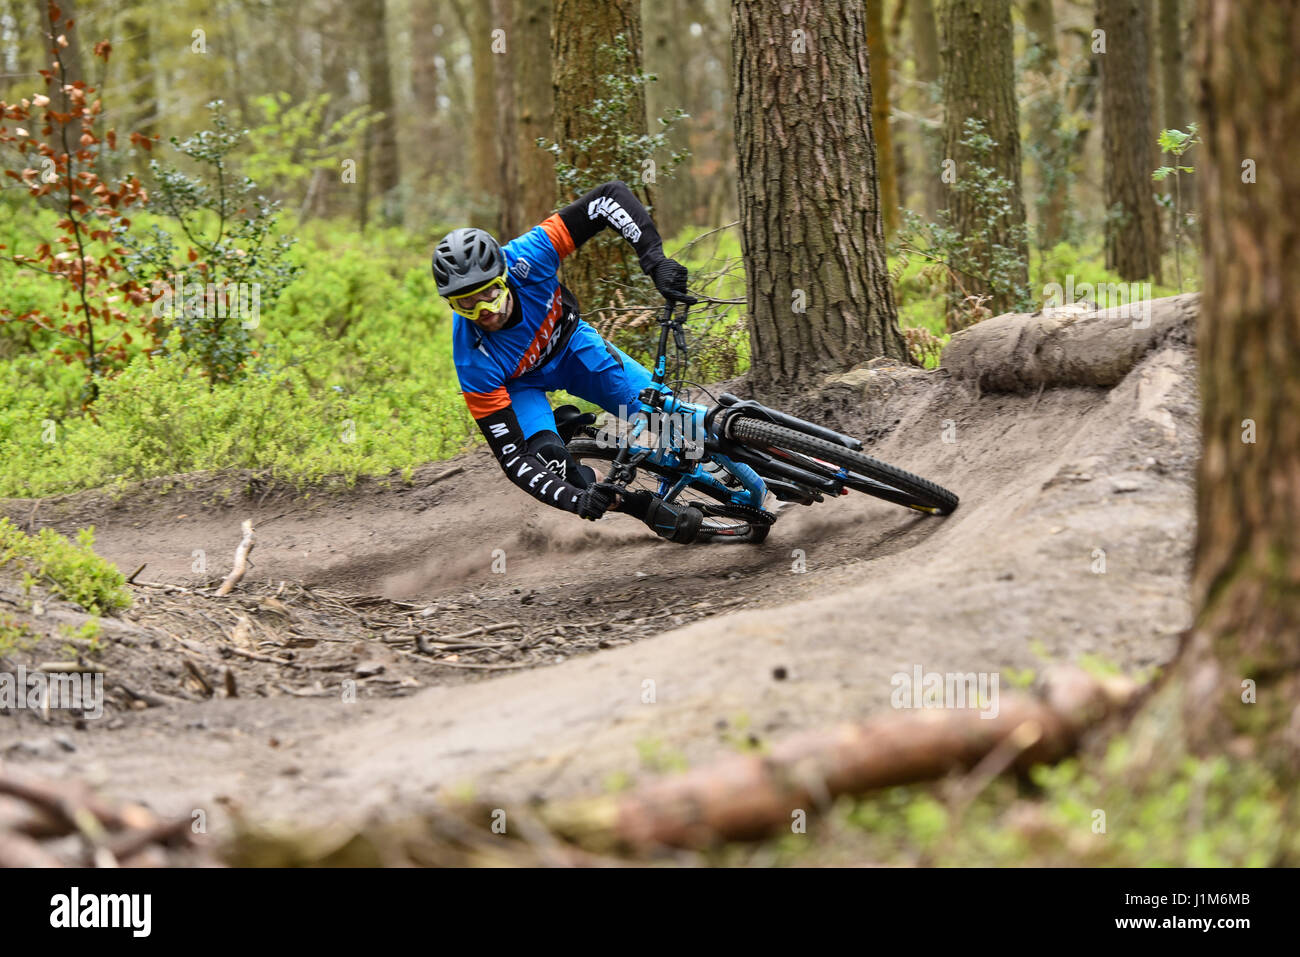 Mountainbiken in Surrey Hills - Aktion erschossen Stockbild